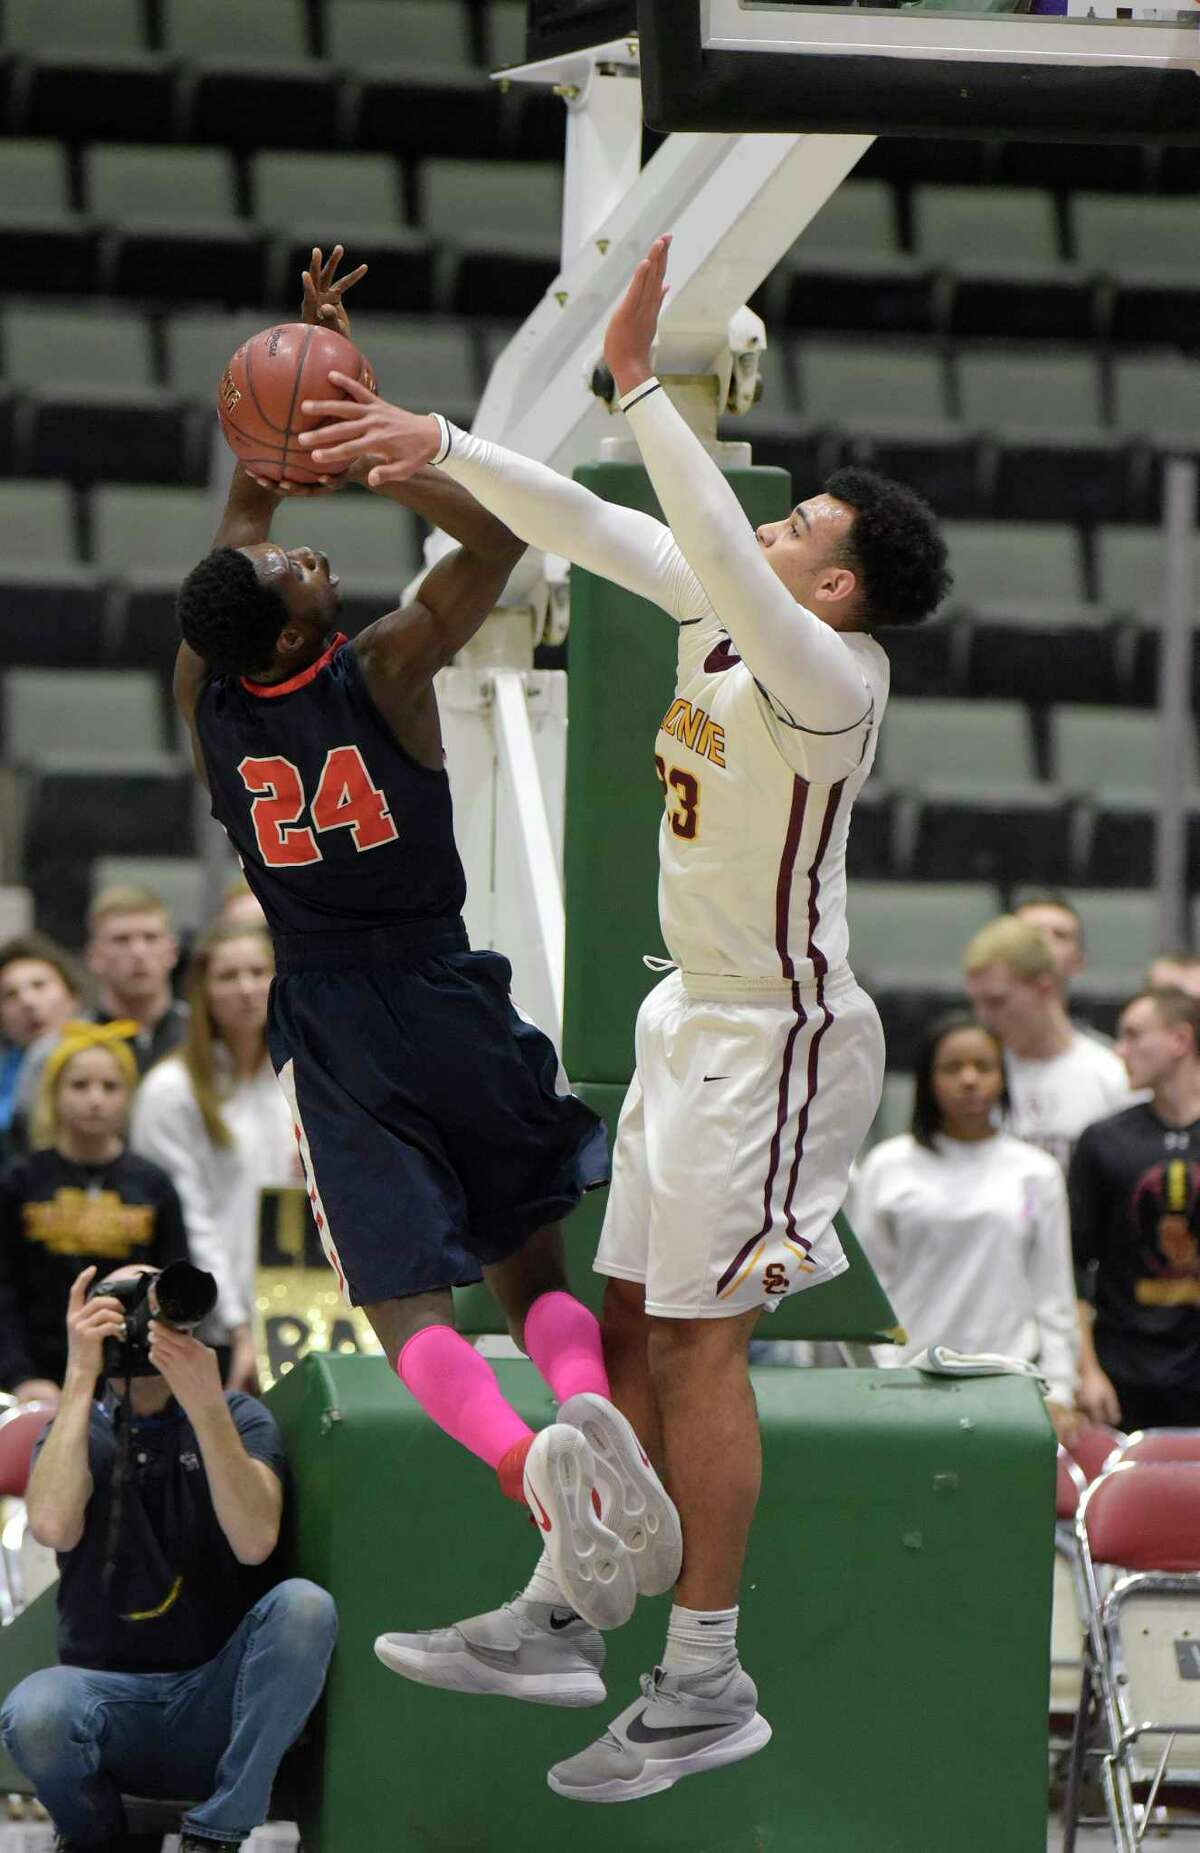 John Ryals of Schenectady, left, puts up a shot as Isaiah Moll of Colonie goes for the block during their Class AA semifinal game at the Glens Falls Civic Center on Tuesday, Feb. 28, 2017, in Glens Falls, N.Y. (Paul Buckowski / Times Union)